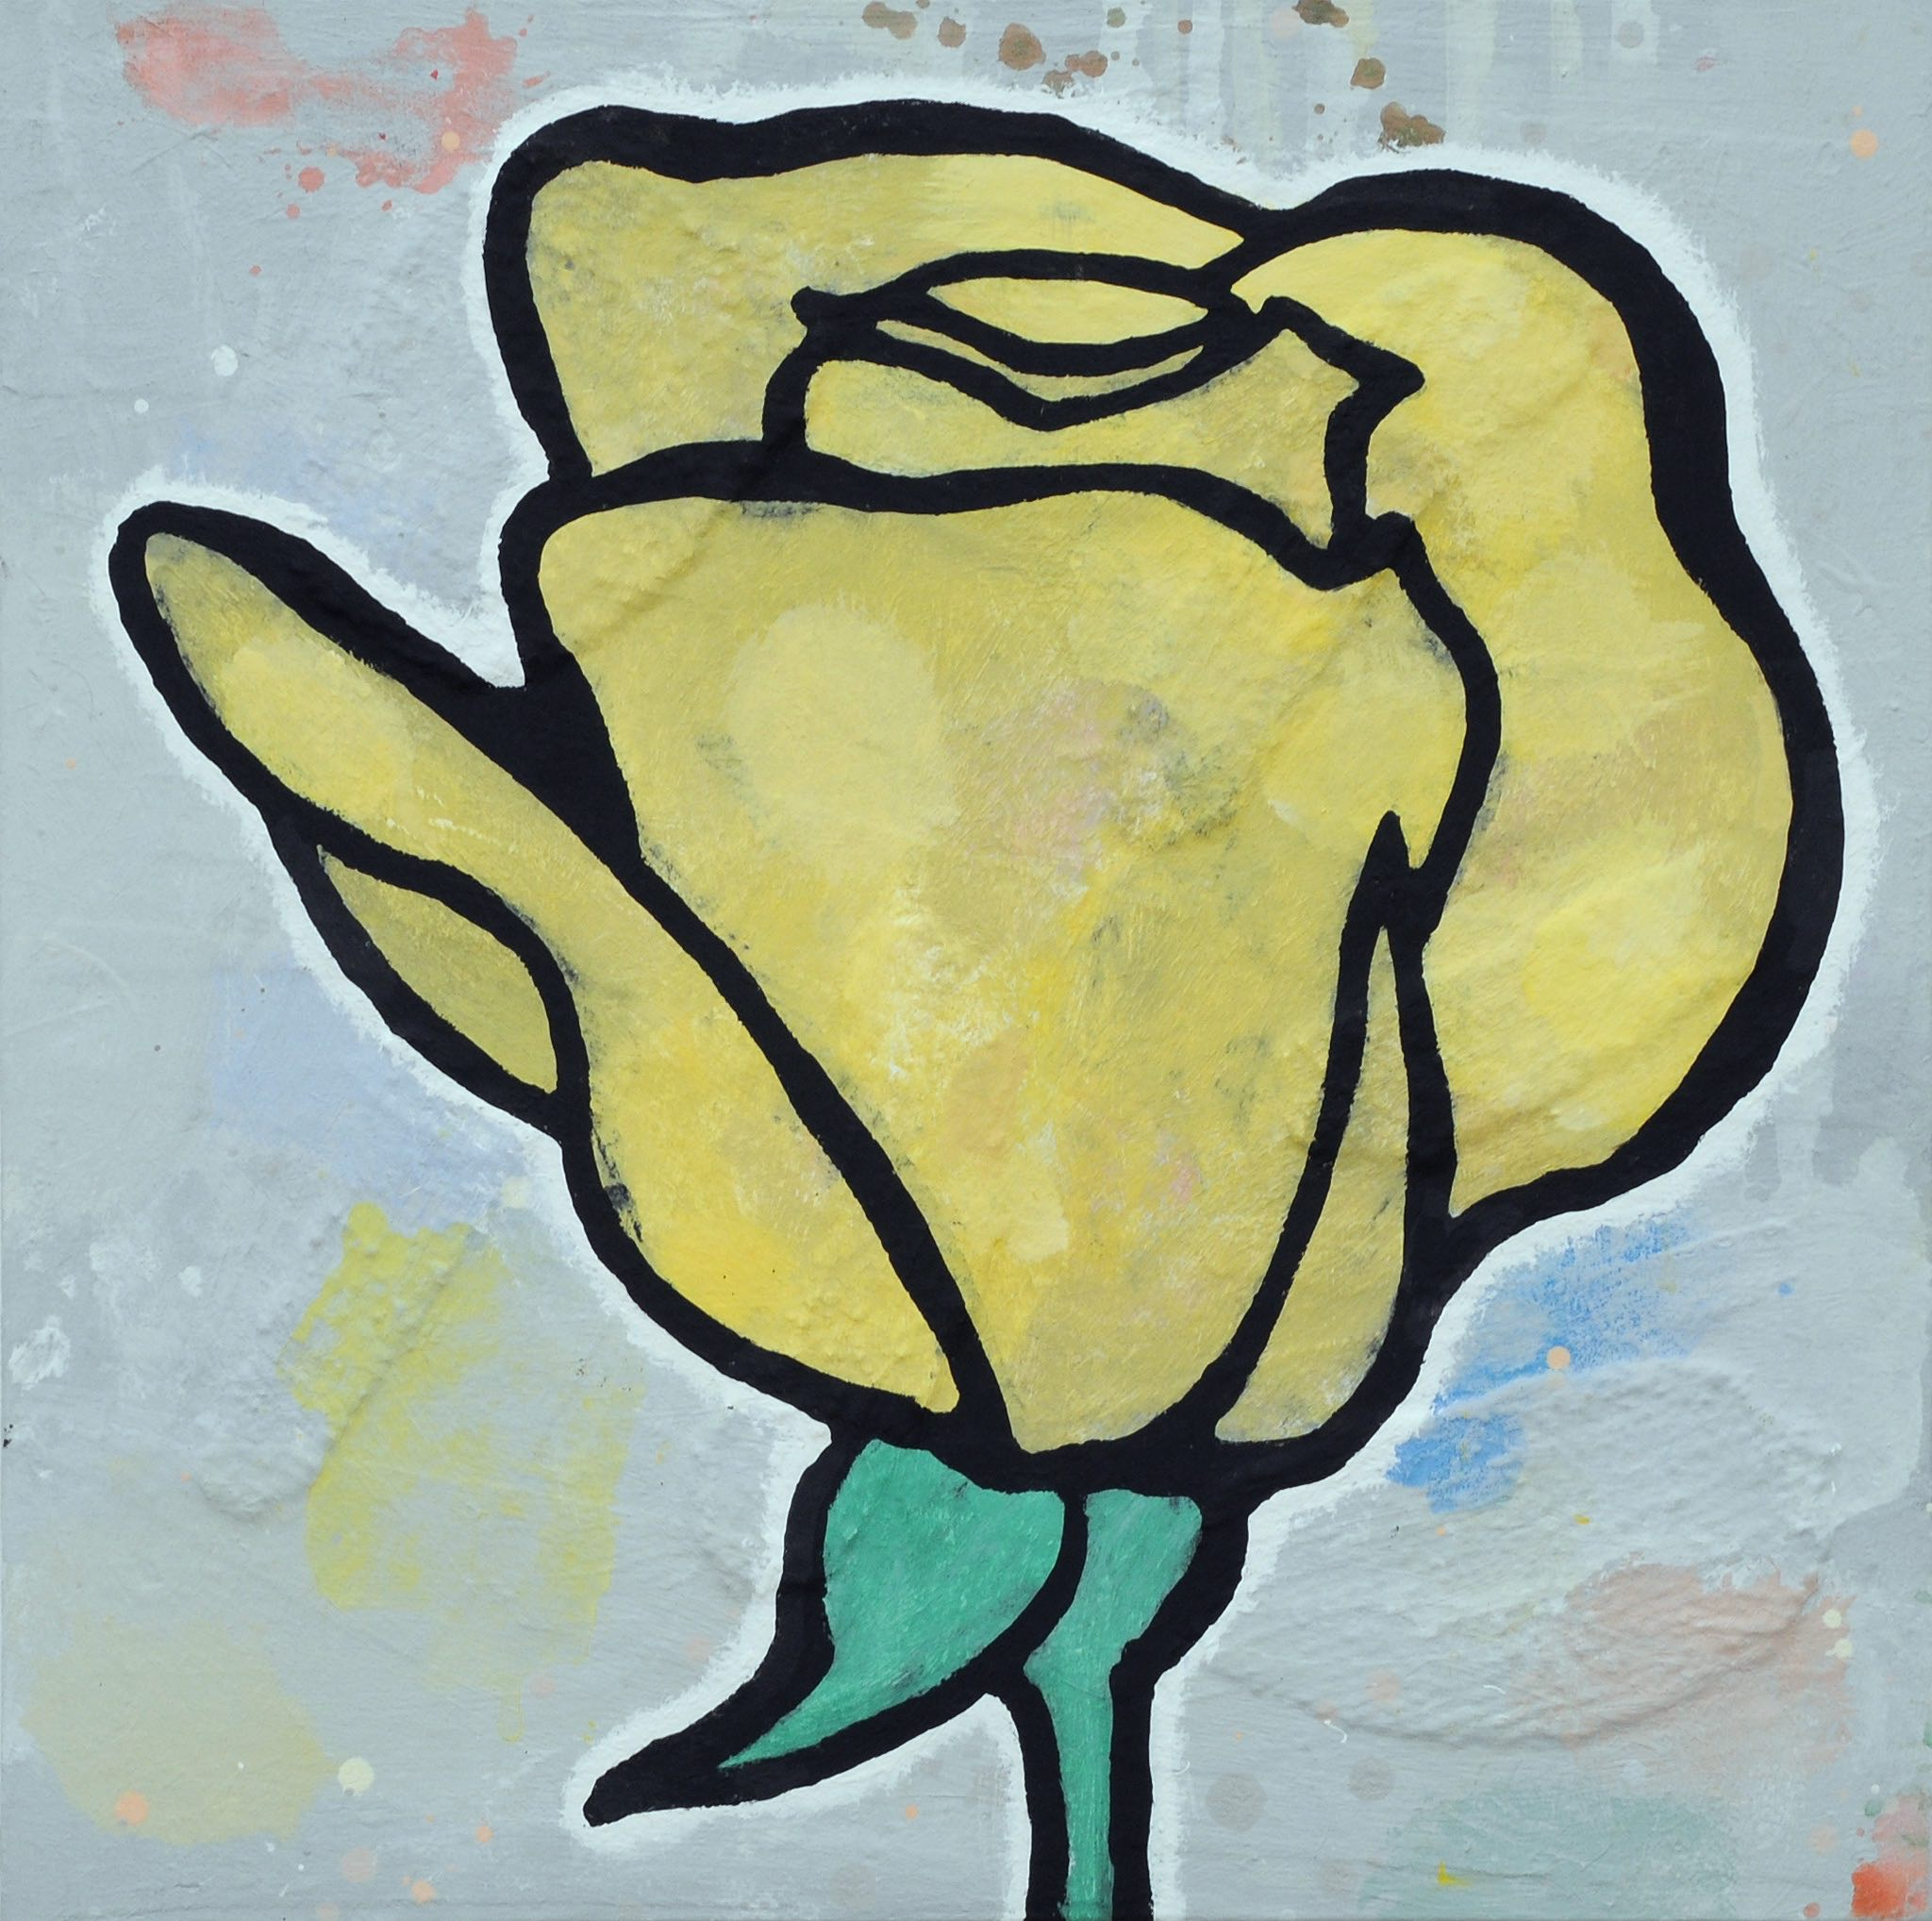 Donald Baechler   Yellow Rose   2010  acrylic and fabric collage on canvas  24 x 24 in / 61 x 61 cm